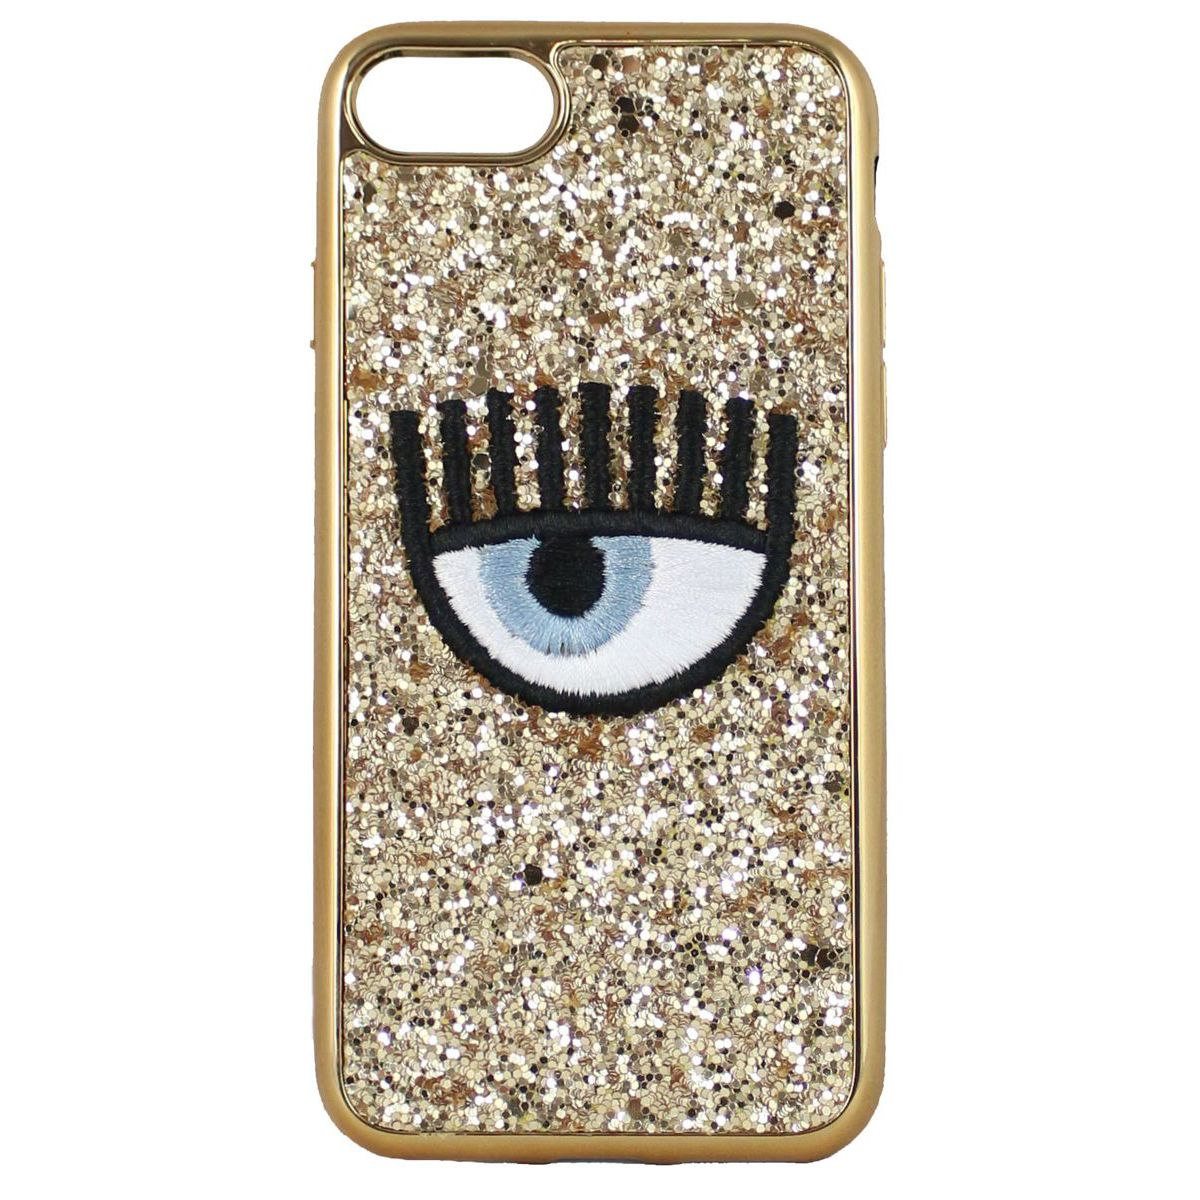 Cover logo Iphone 7/8 Oro CHIARA FERRAGNI